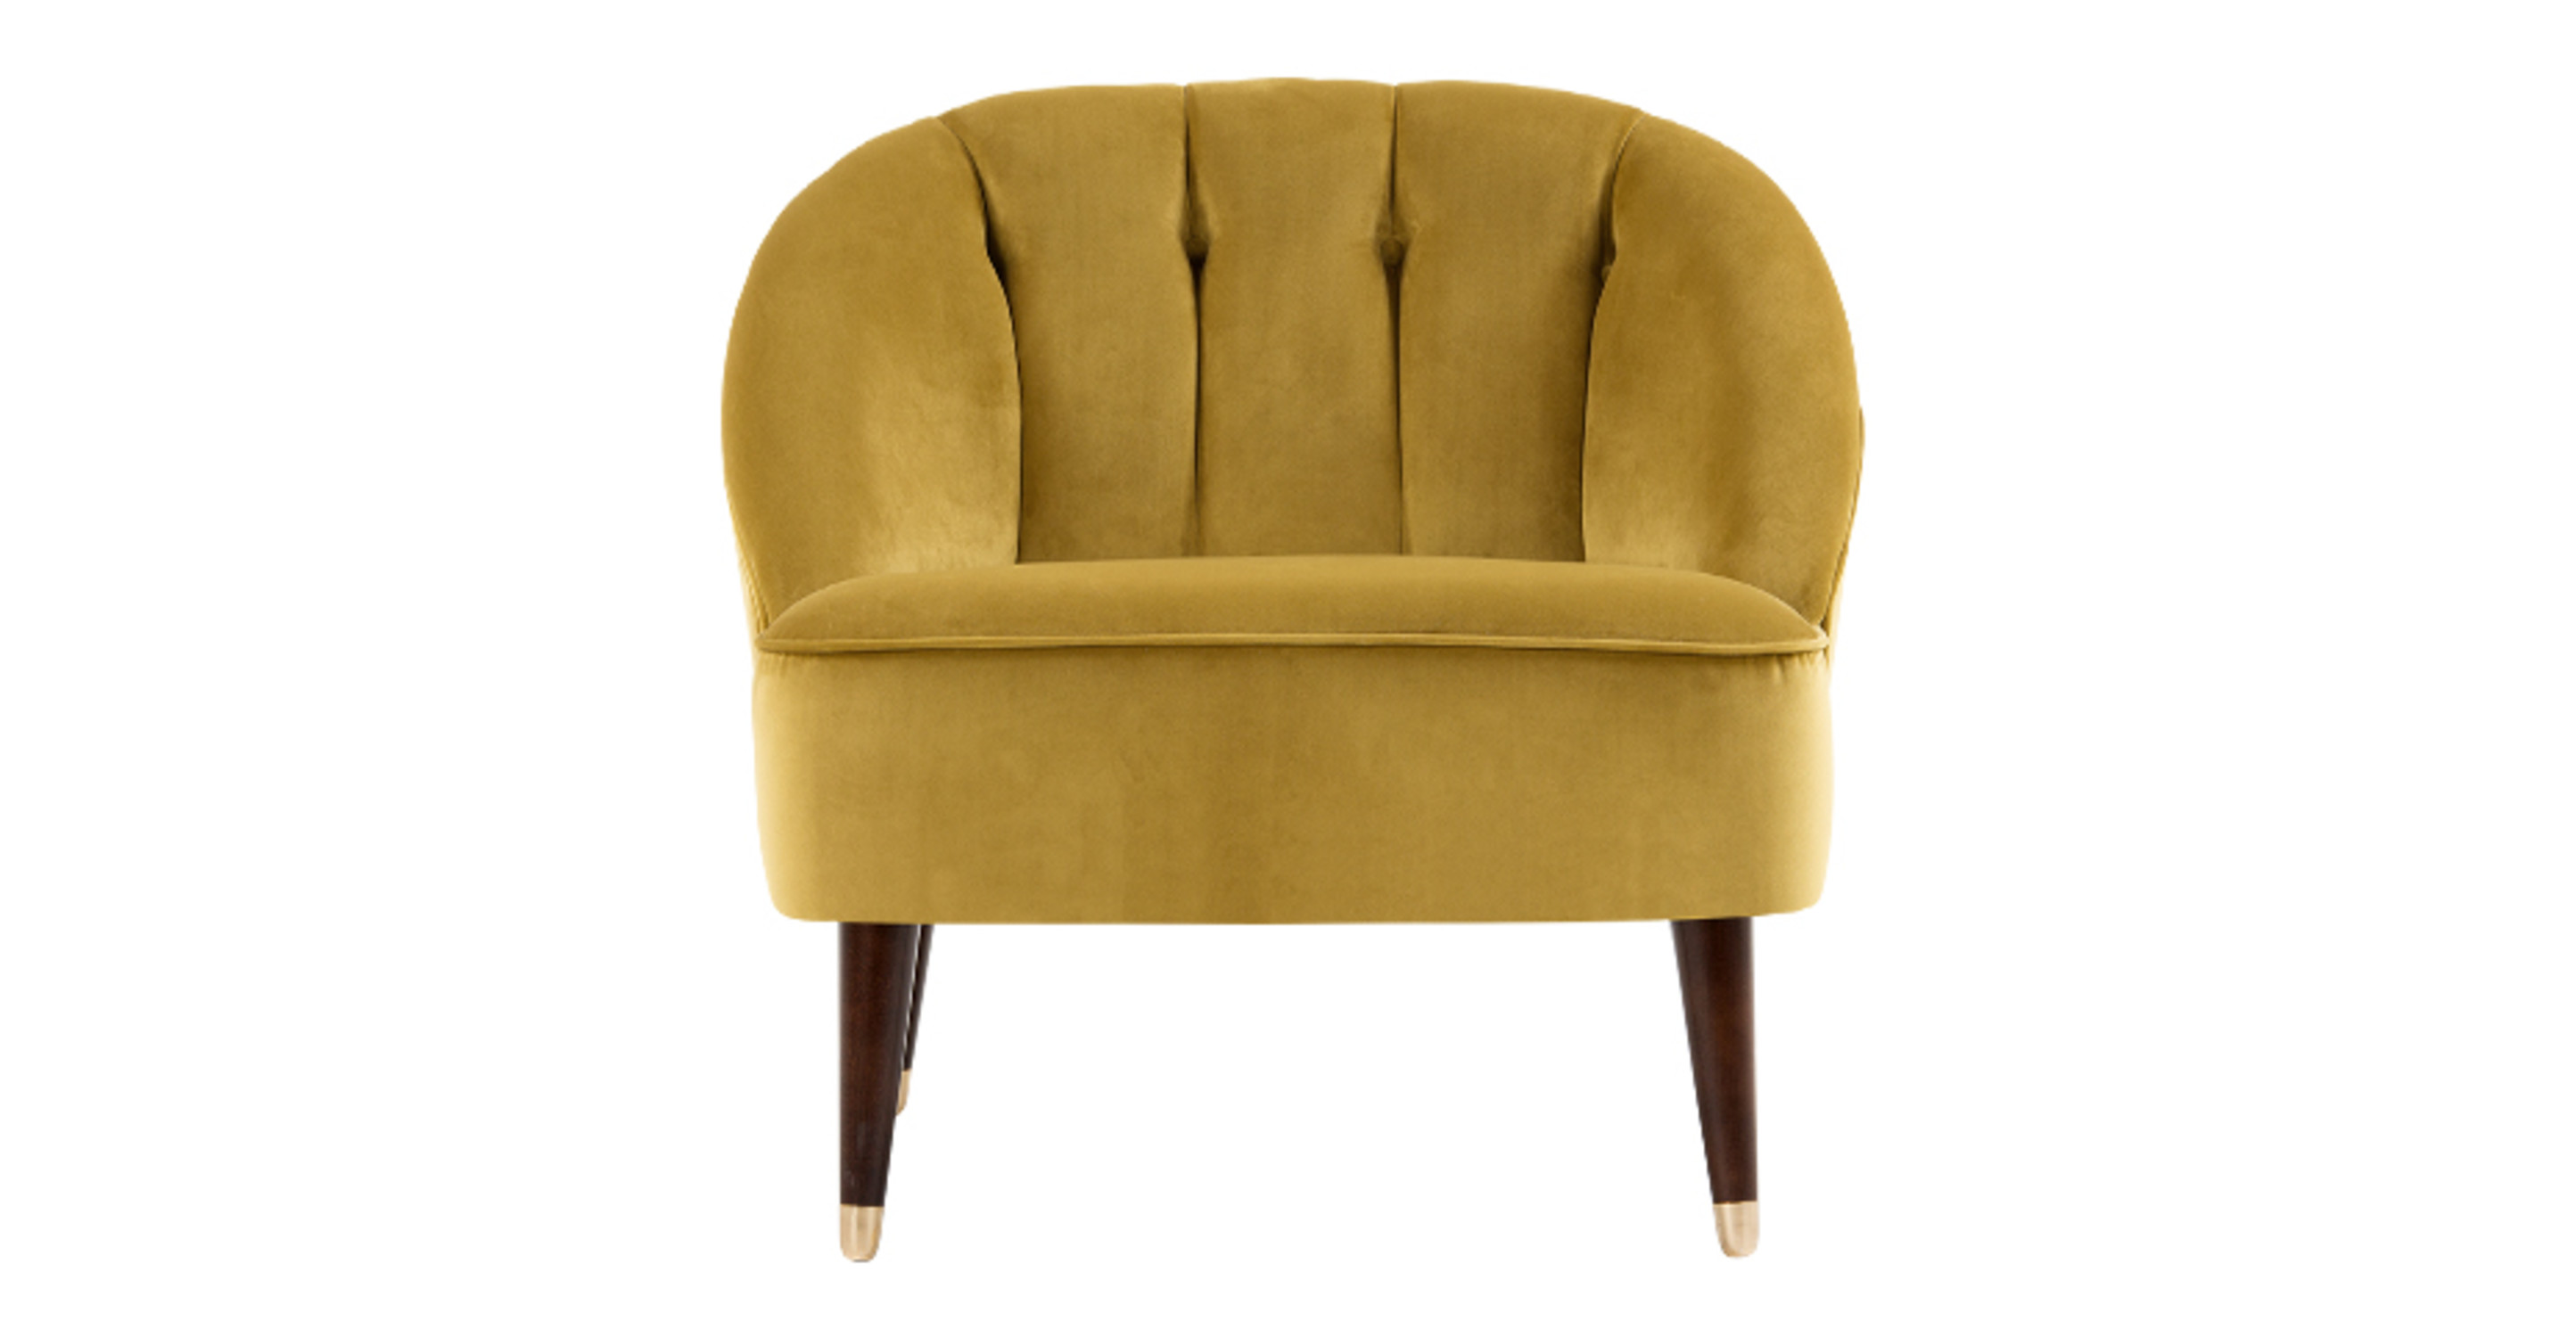 gold velvet chair margot accent antique madecom vintage armchair modern dining tables melbourne quilted caddy pattern grey sofa and loveseat slipcovers ikea gray small comfy couch